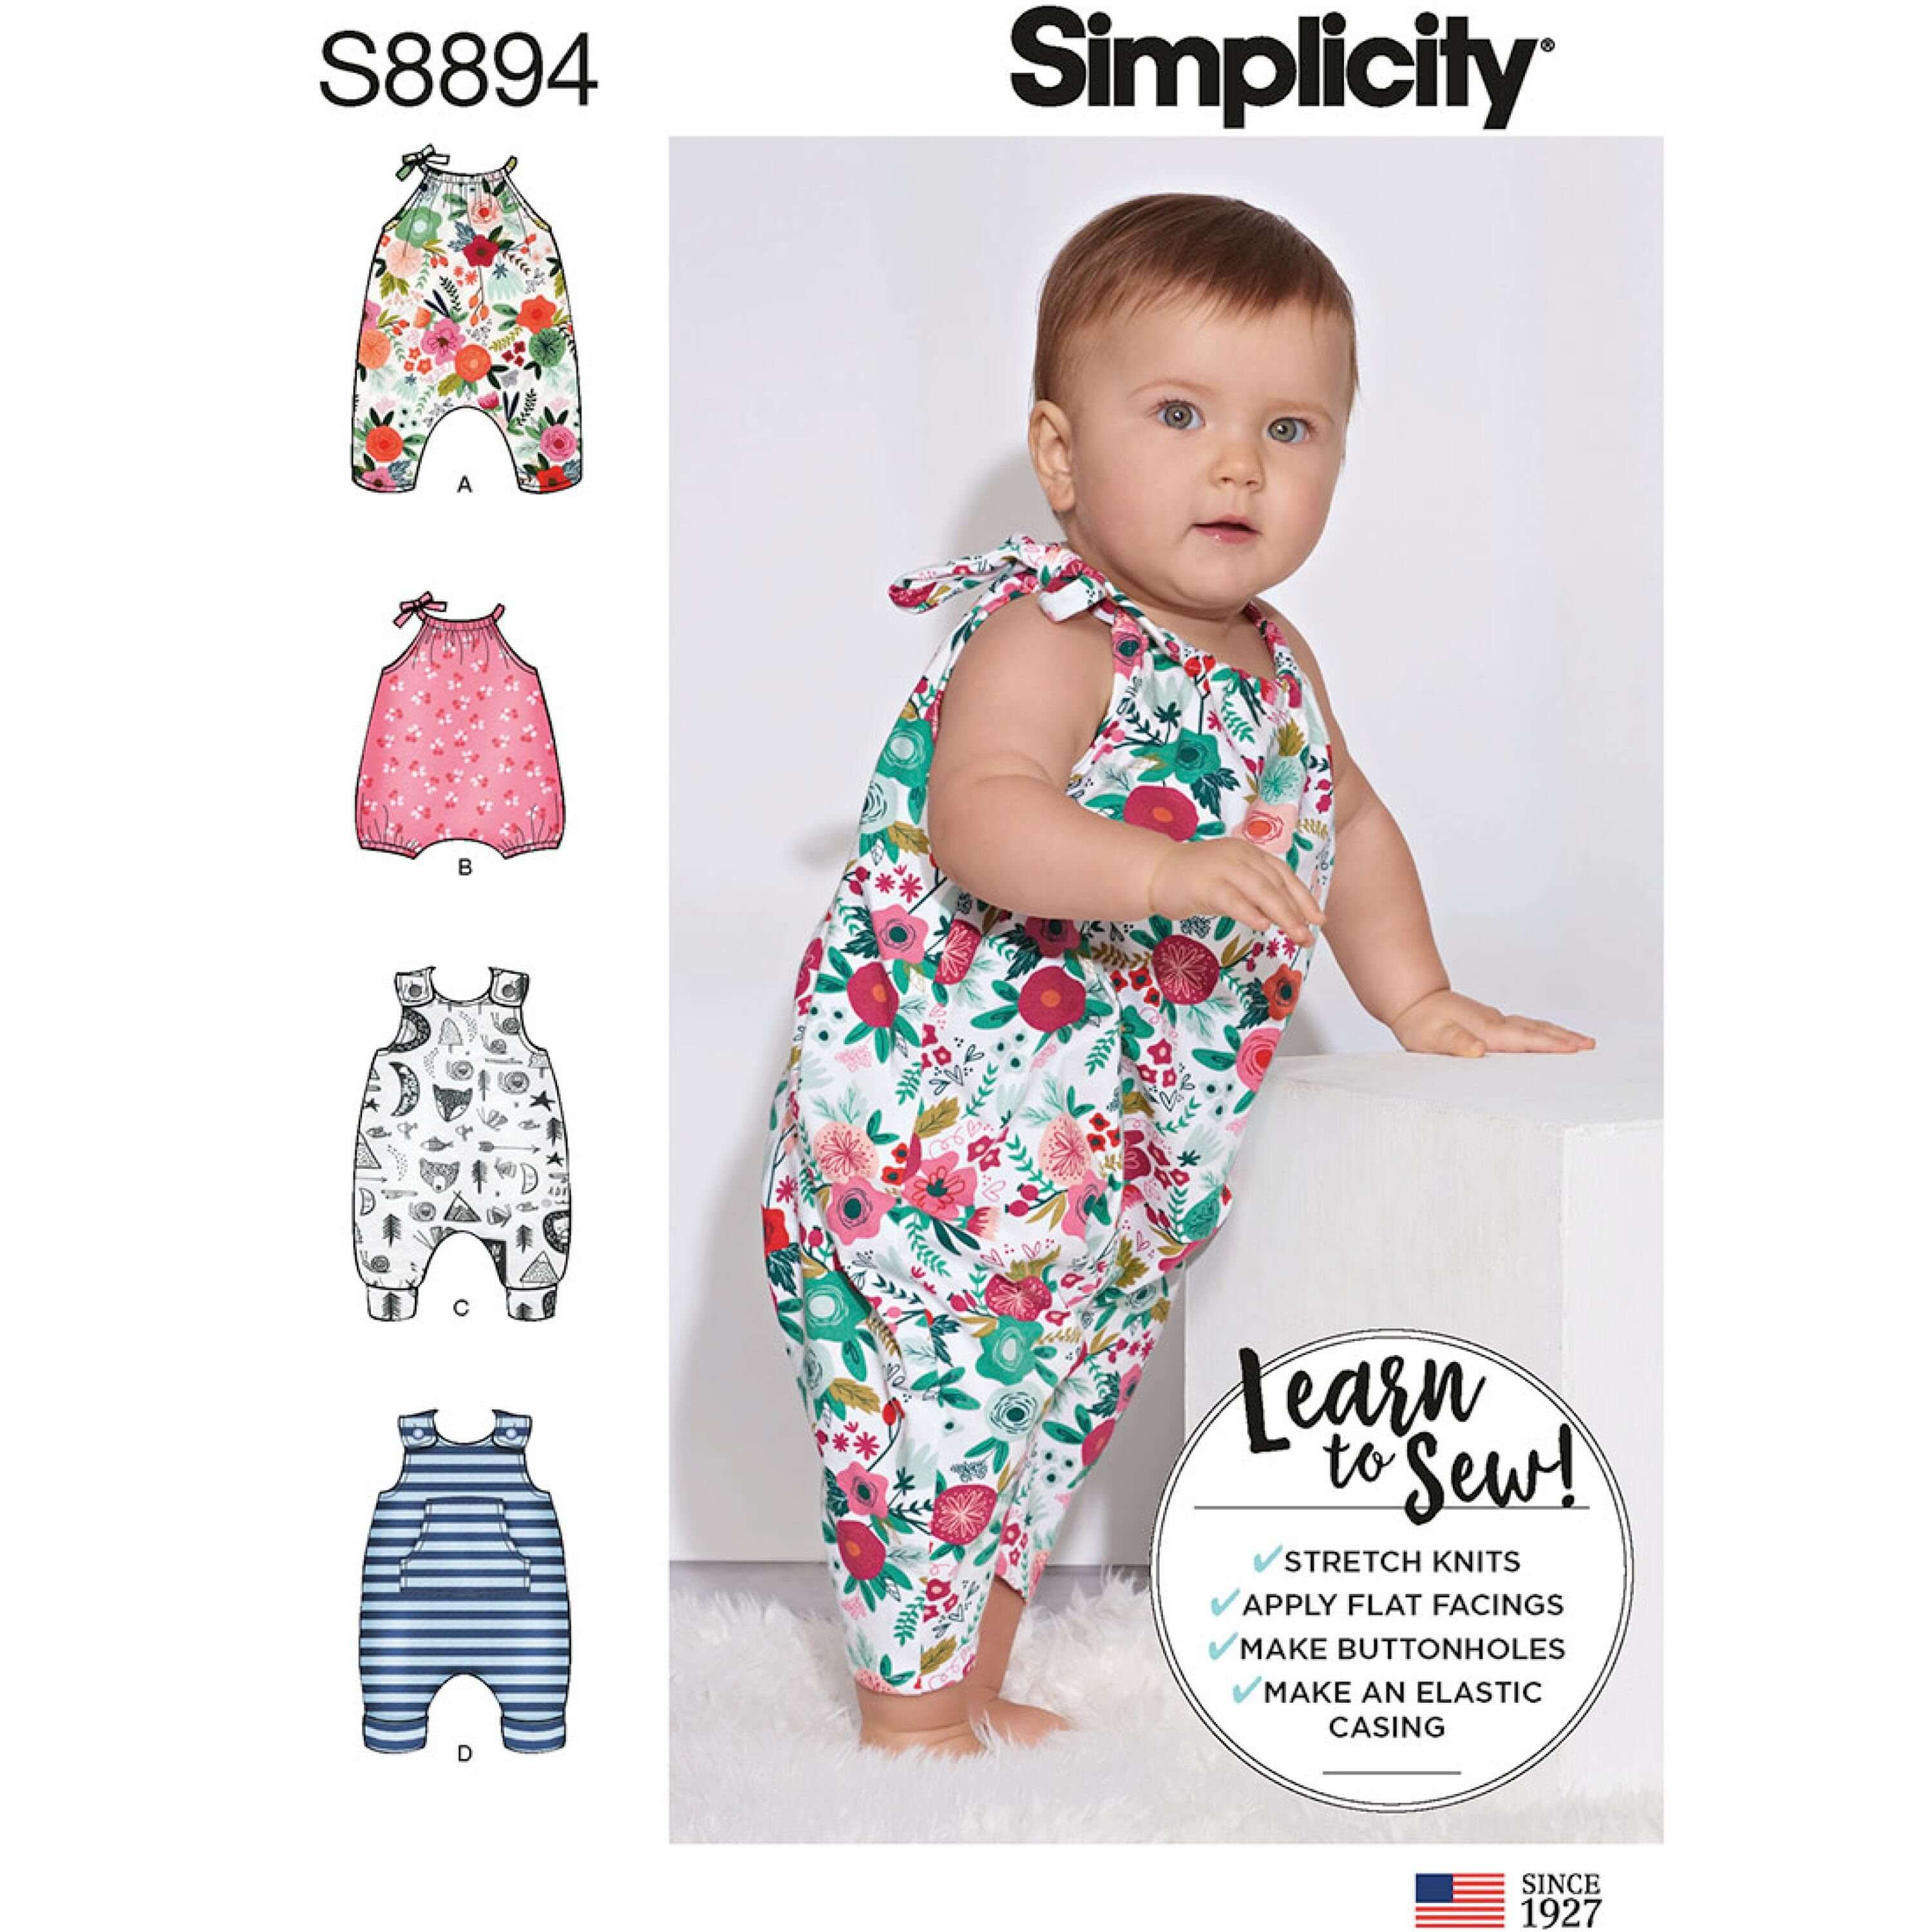 Simplicity Sewing Pattern 8894 Babies Baby Stretch Knit Rompers